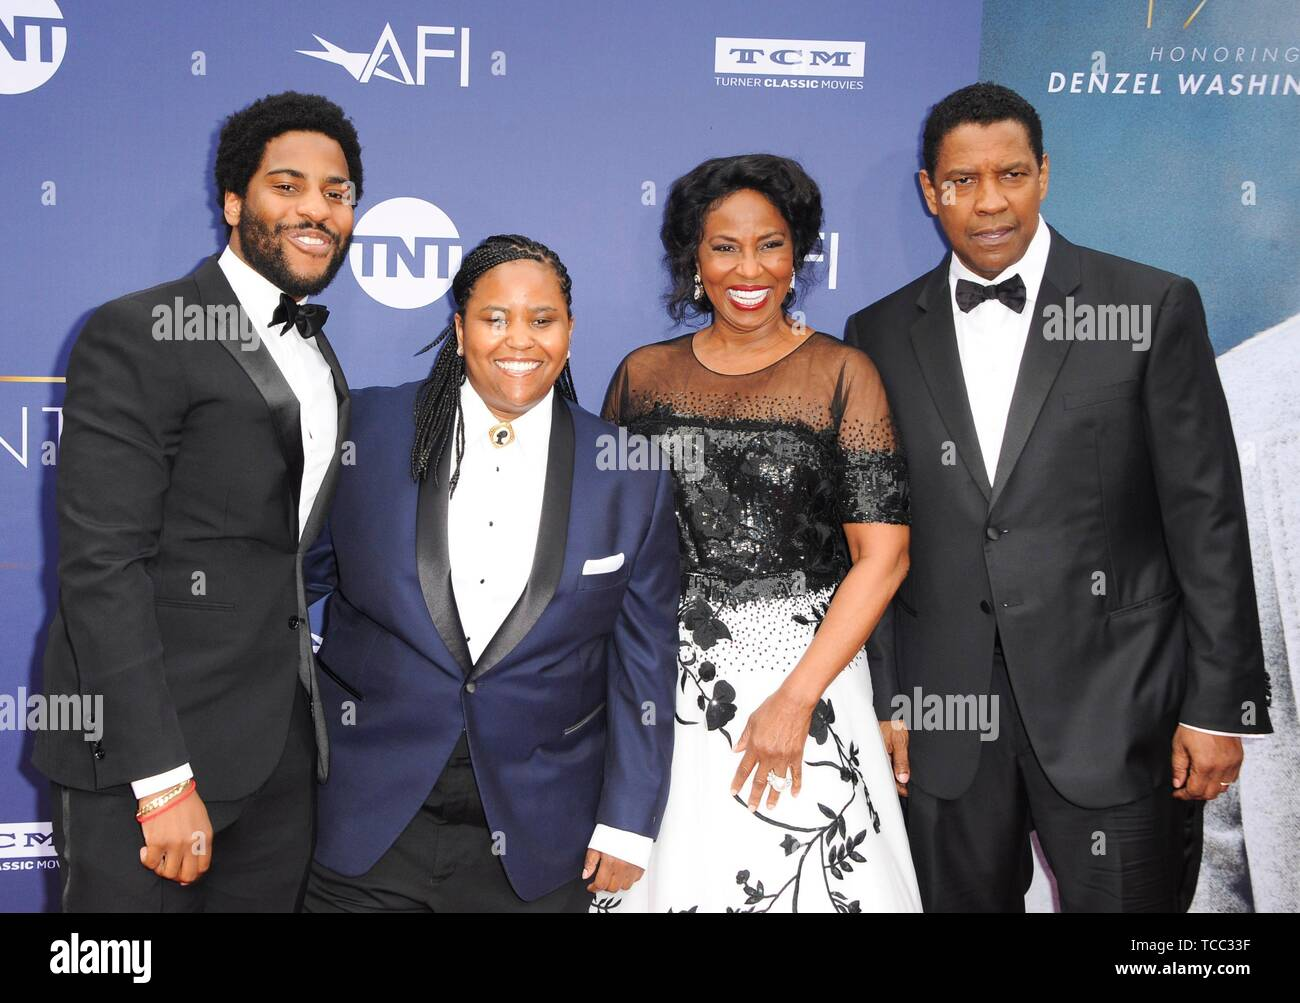 Los Angeles, CA, USA. 6th June, 2019. Denzel Washington, Pauletta Washington, Katia Washington, Malcolm Washington at arrivals for AFI Life Achievement Award Tribute to Denzel Washington, The Dolby Theatre at Hollywood and Highland Center, Los Angeles, CA June 6, 2019. Credit: Elizabeth Goodenough/Everett Collection/Alamy Live News Stock Photo